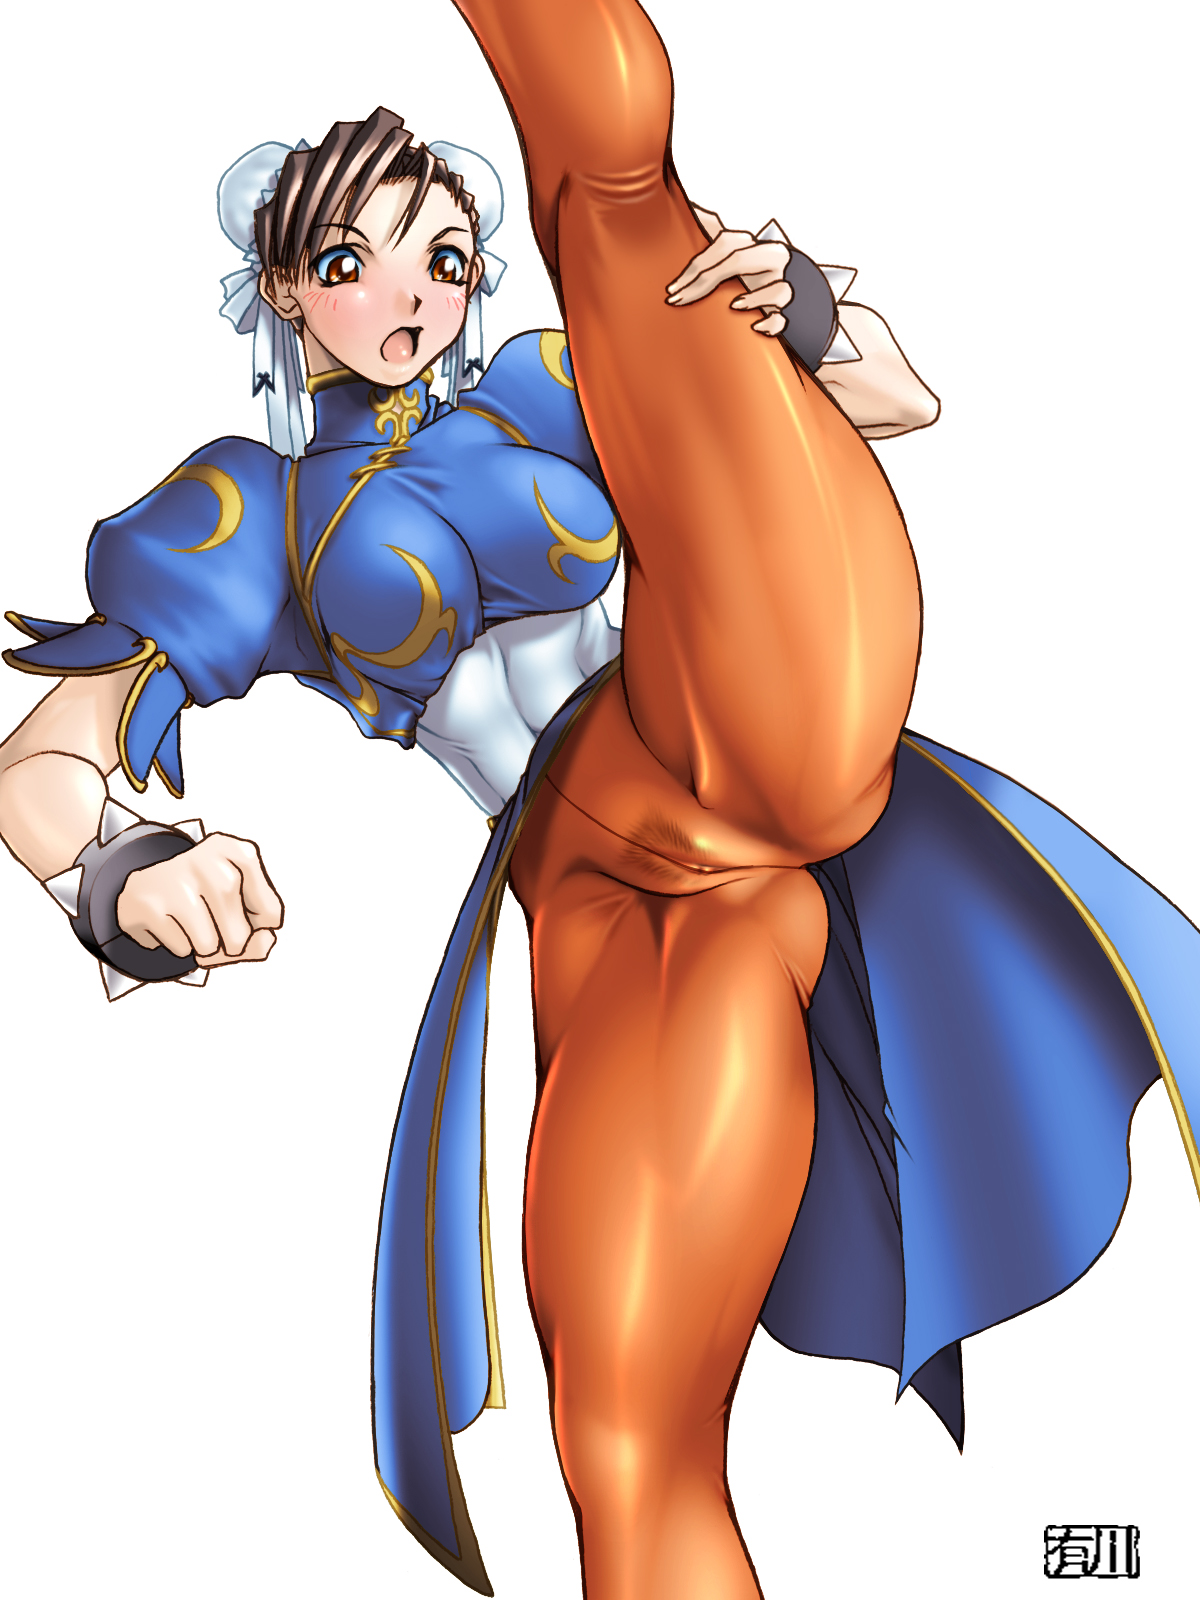 Chun li porn pictures cartoon tube